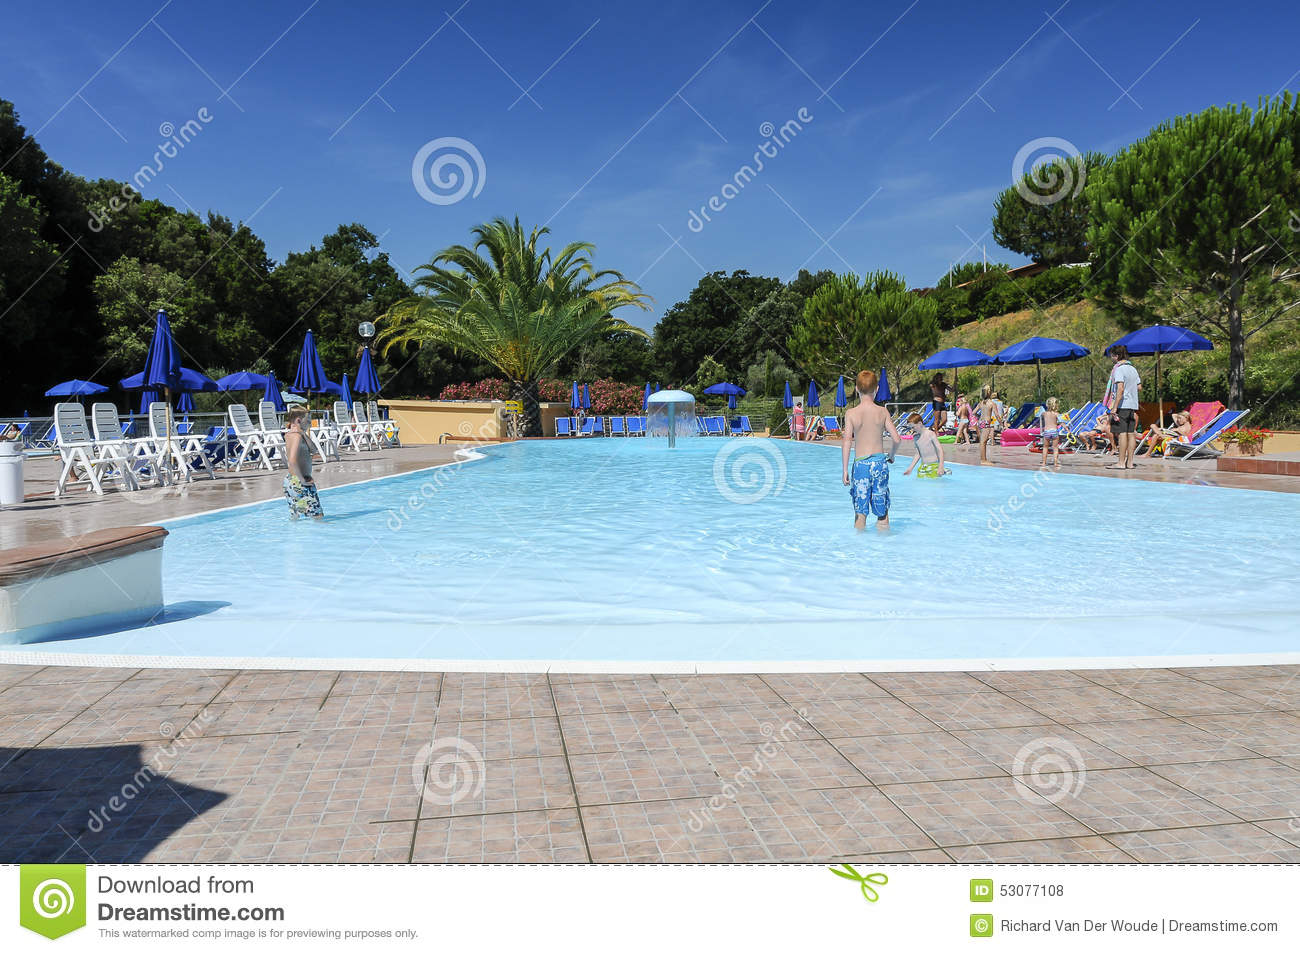 Camping place in holland 2015 editorial image - Campsites in holland with swimming pool ...